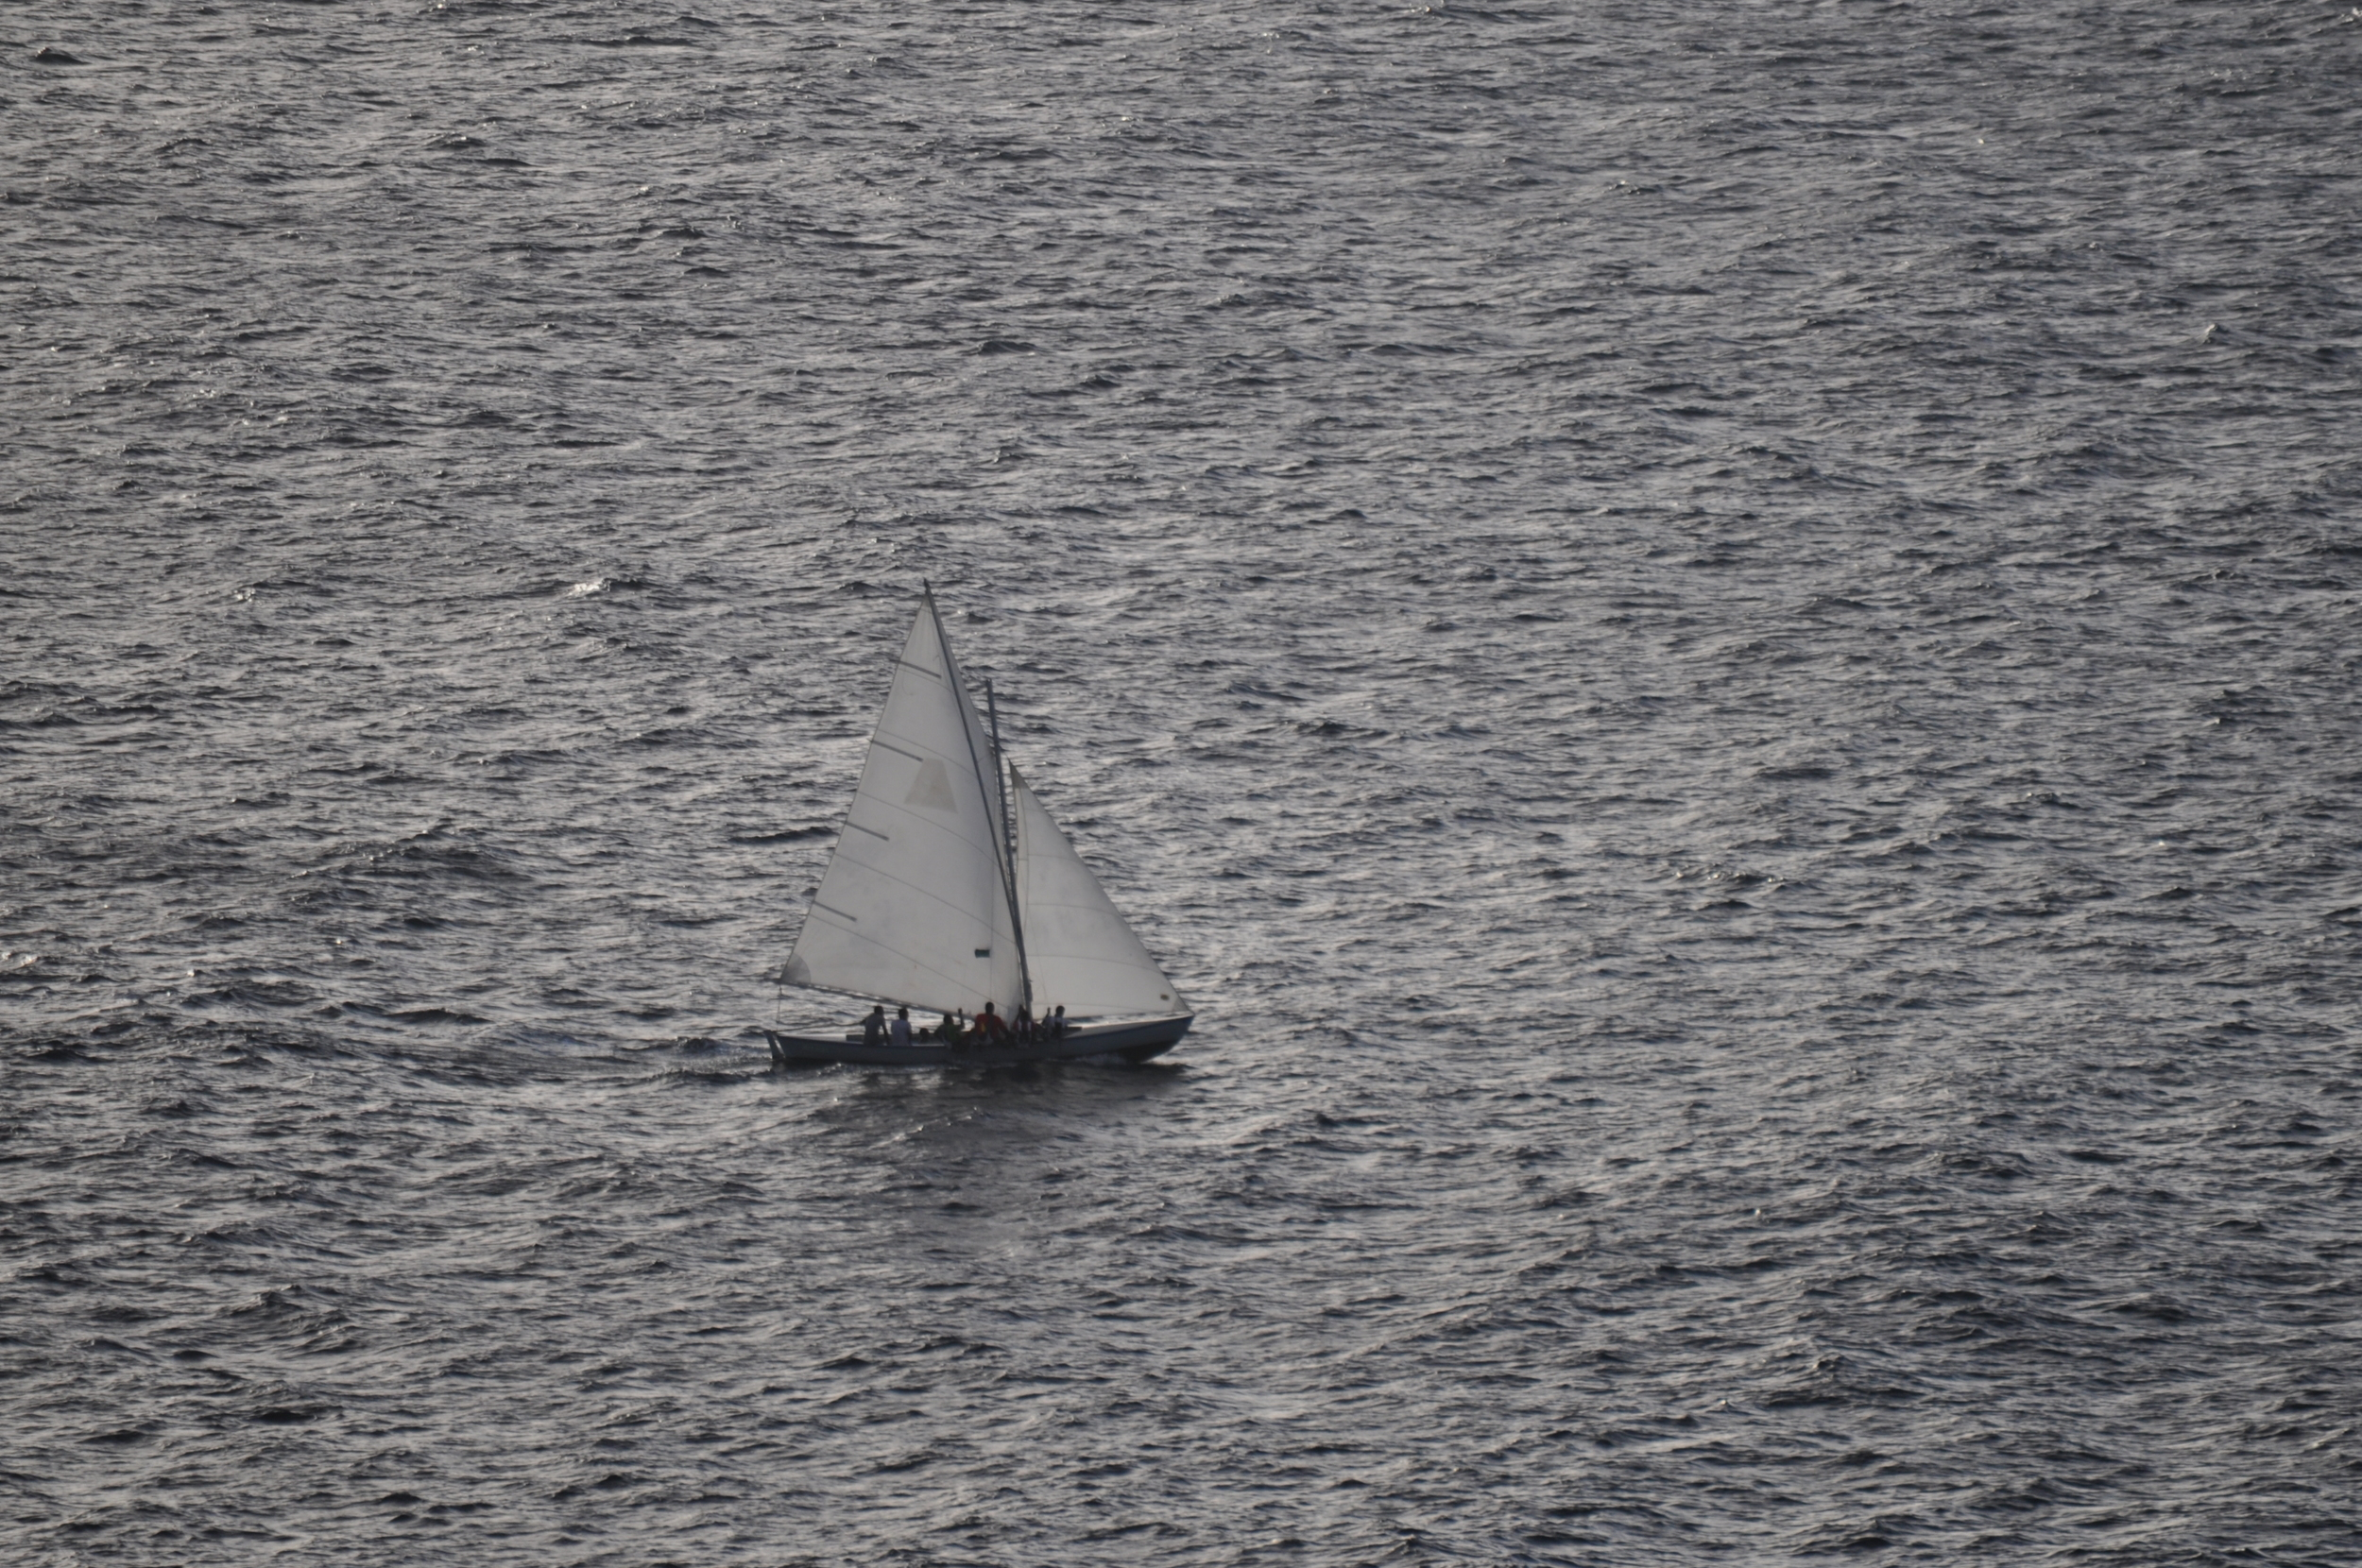 The Iron Duke - 100-year old traditional Bequia whaleboat